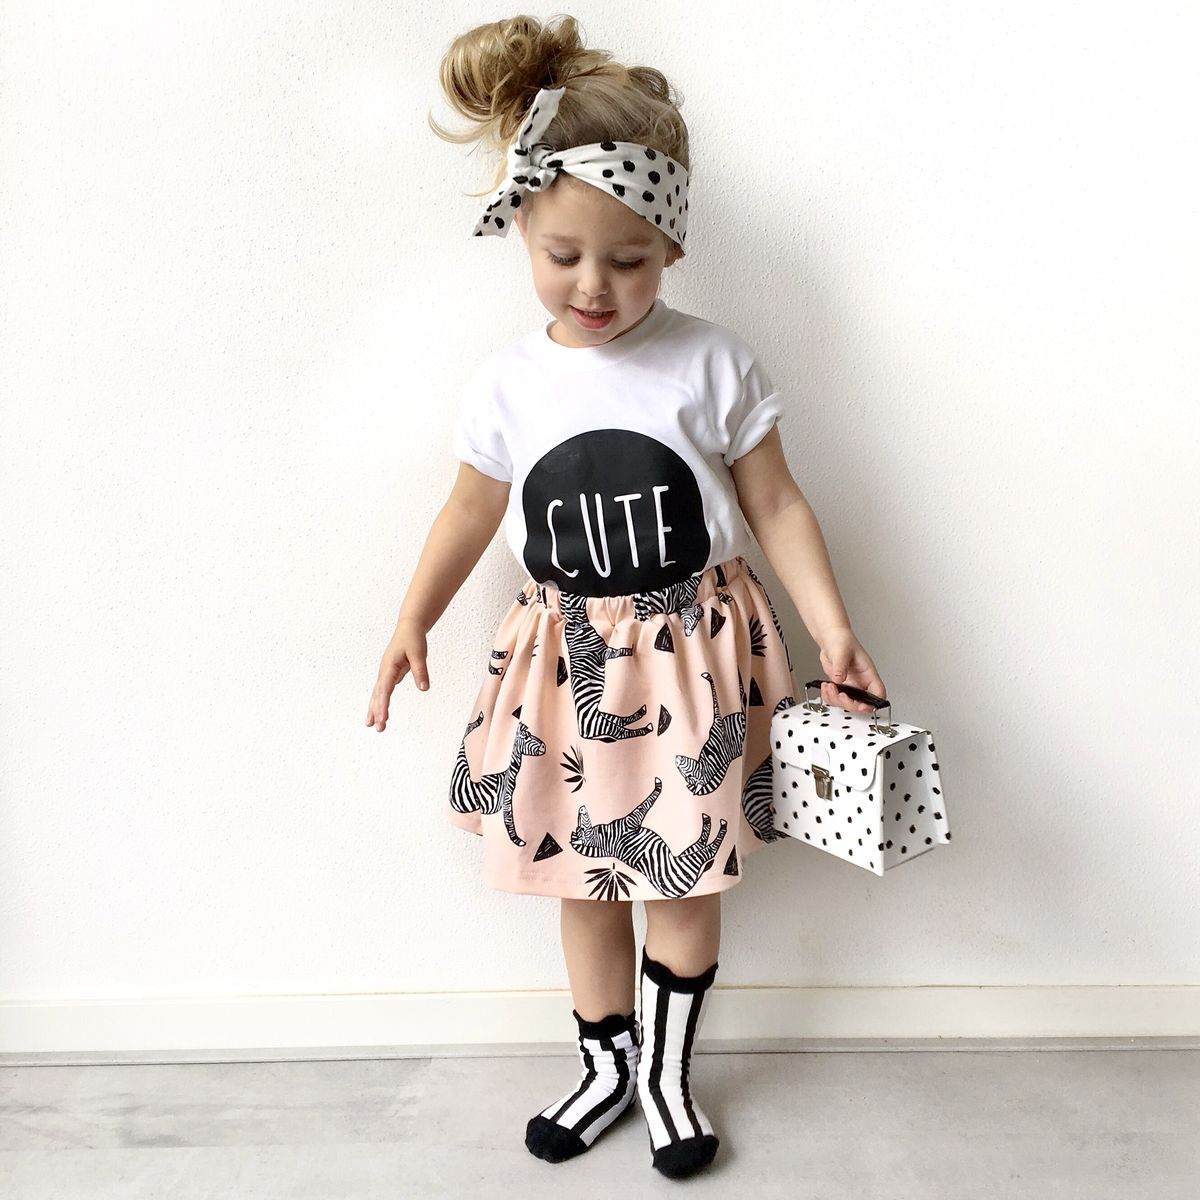 Cute Kids TShirt (various sizes) - product images  of